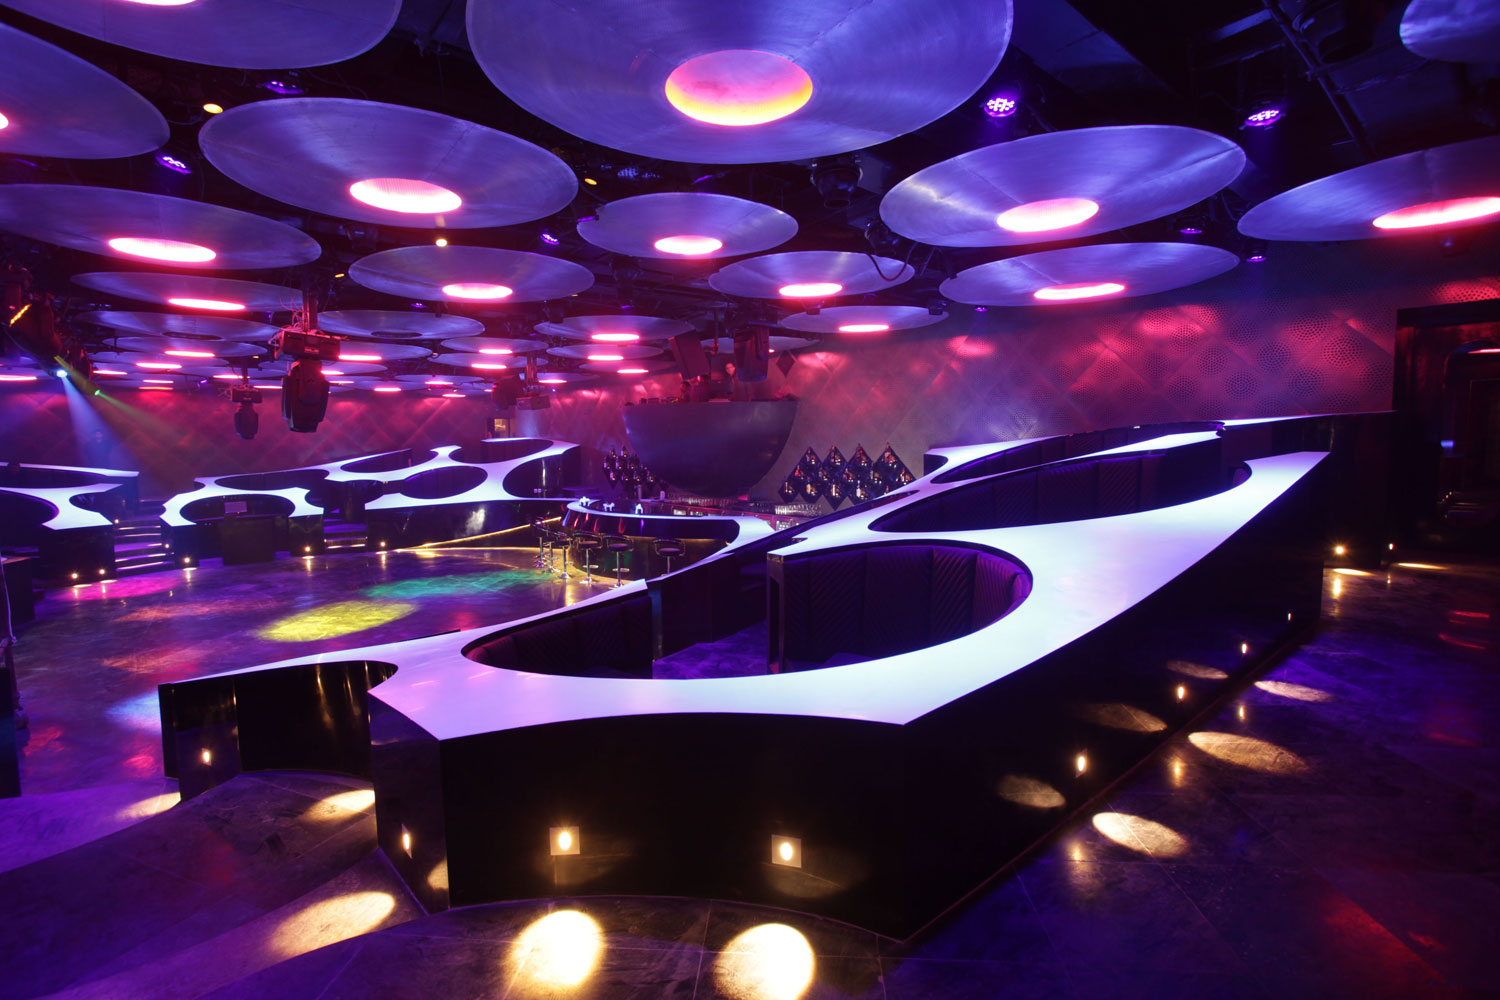 Arredamento del bar Blue Frog Lounge in India